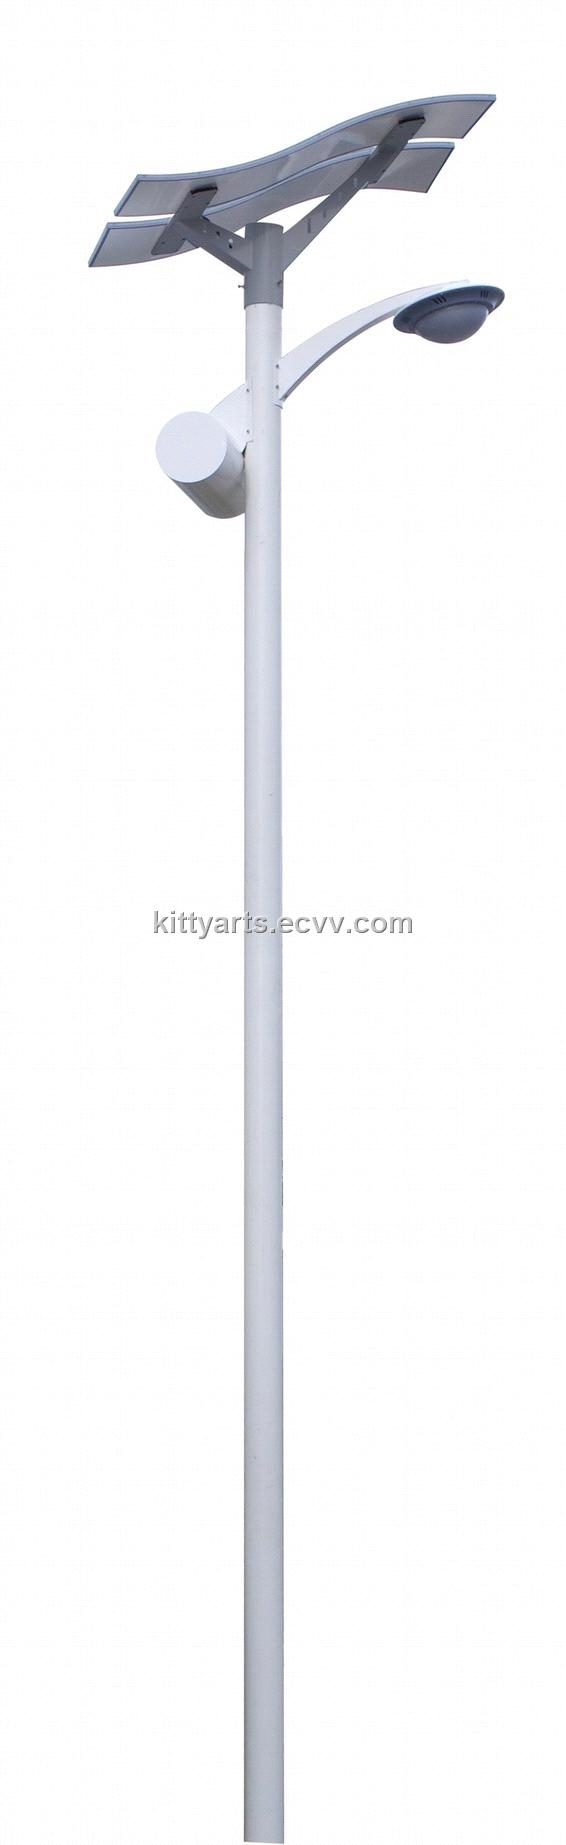 30W flexible solar street light1